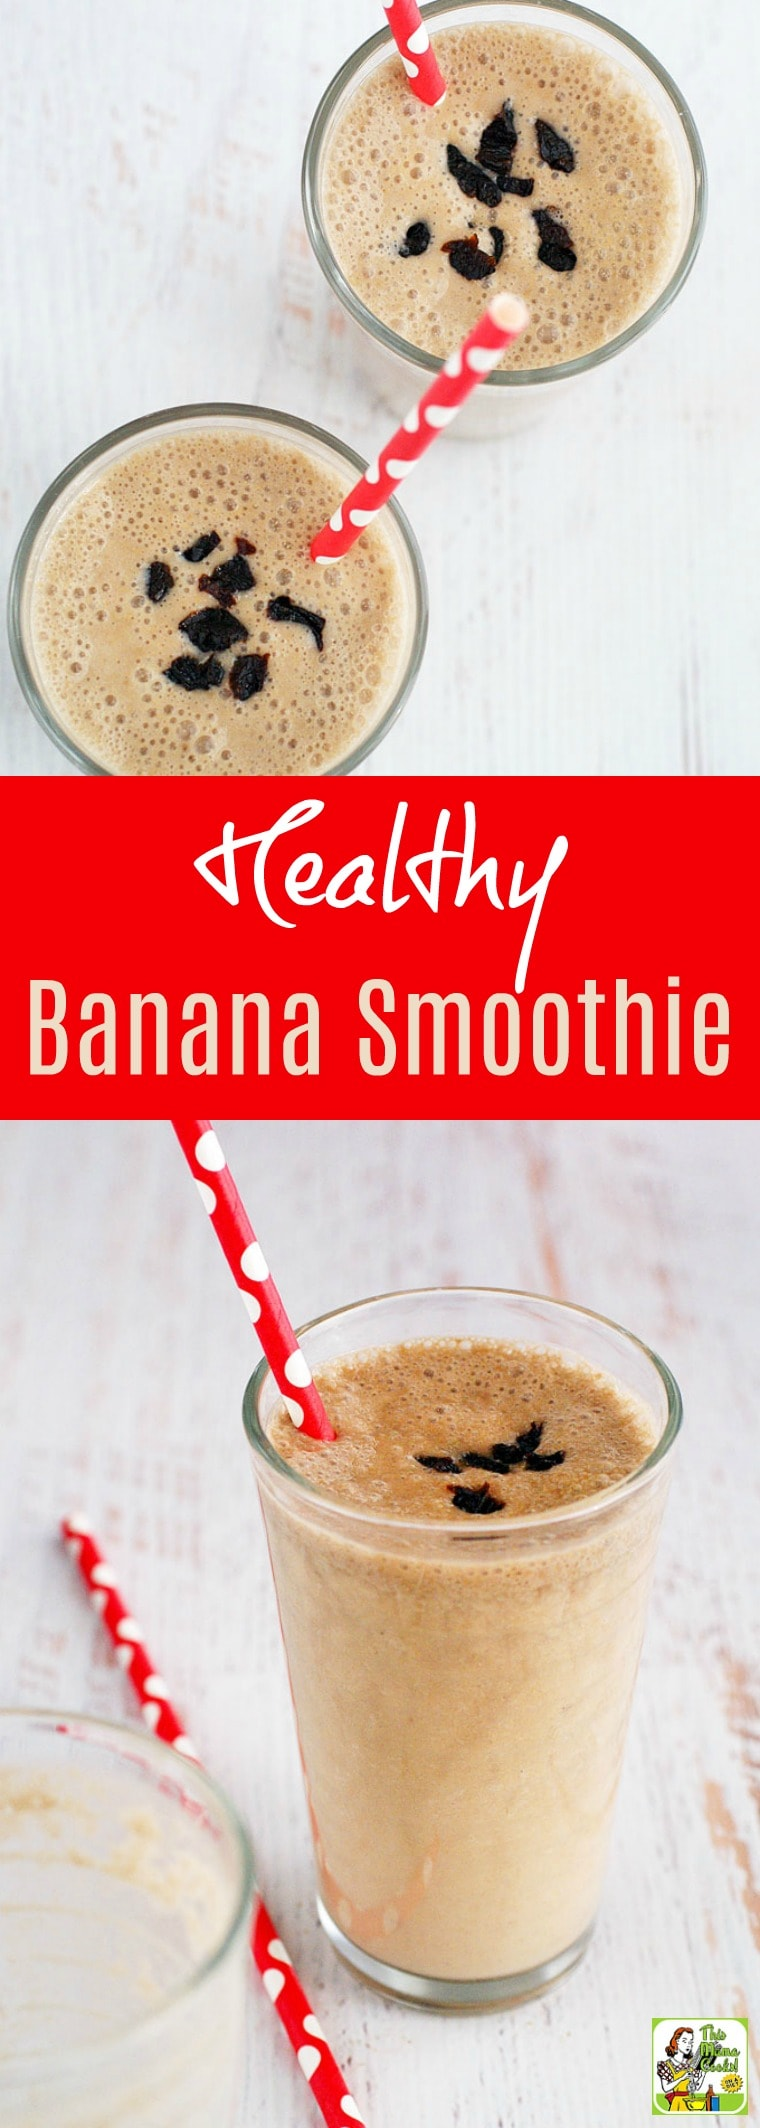 Jump start your day with a Healthy Banana Smoothie. This banana smoothie recipe makes a terrific on the go breakfast meal. It's dairy free, nut free, gluten free, and made with sunflower butter, coconut milk, and light plum juice. #banana #smoothie #dairyfree #glutenfee #nutfree #breakfast #snack #vegan